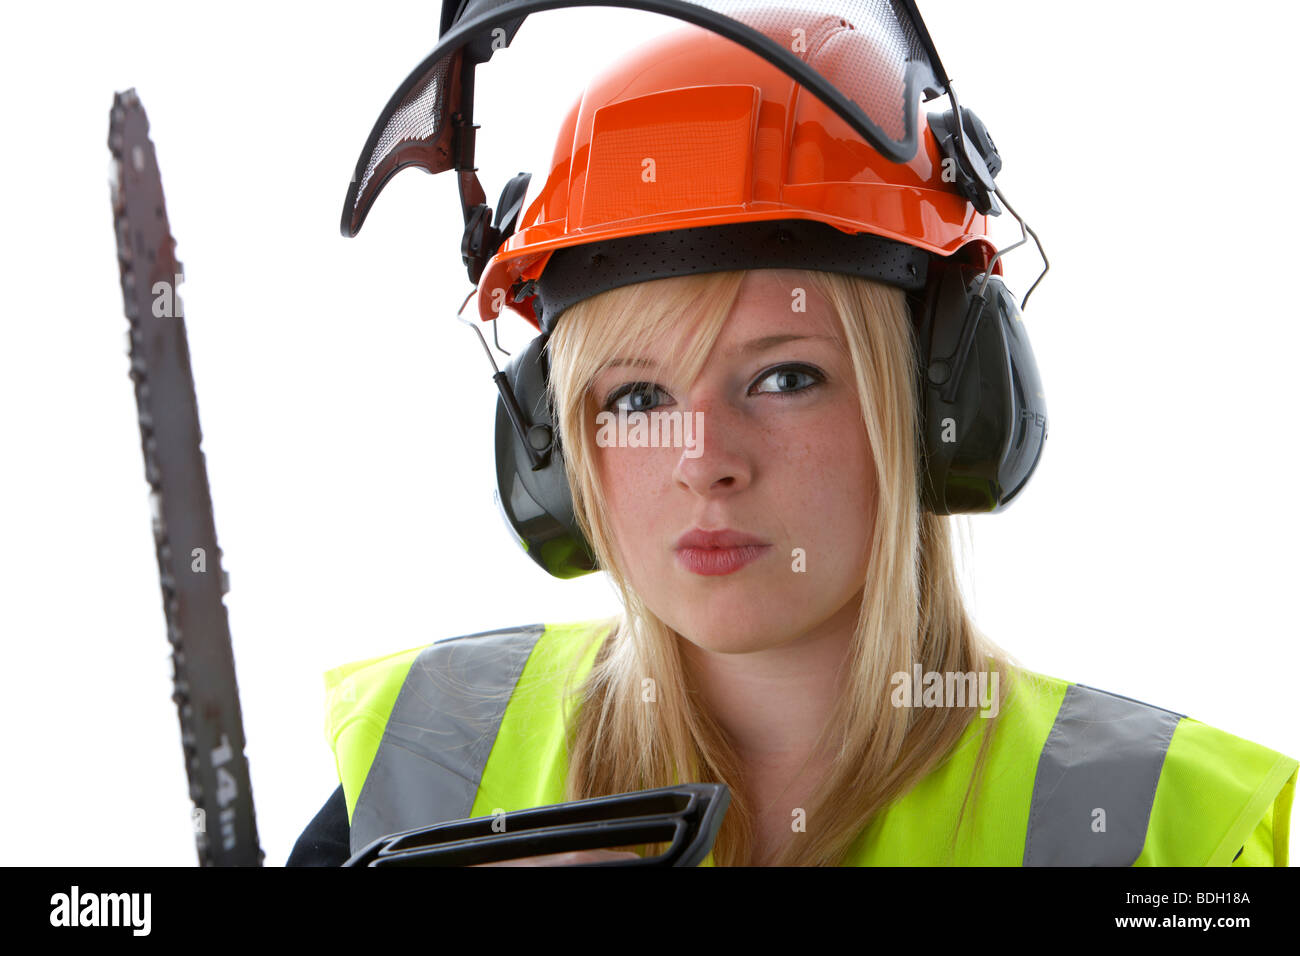 young 20 year old blonde woman wearing orange hard hat ear